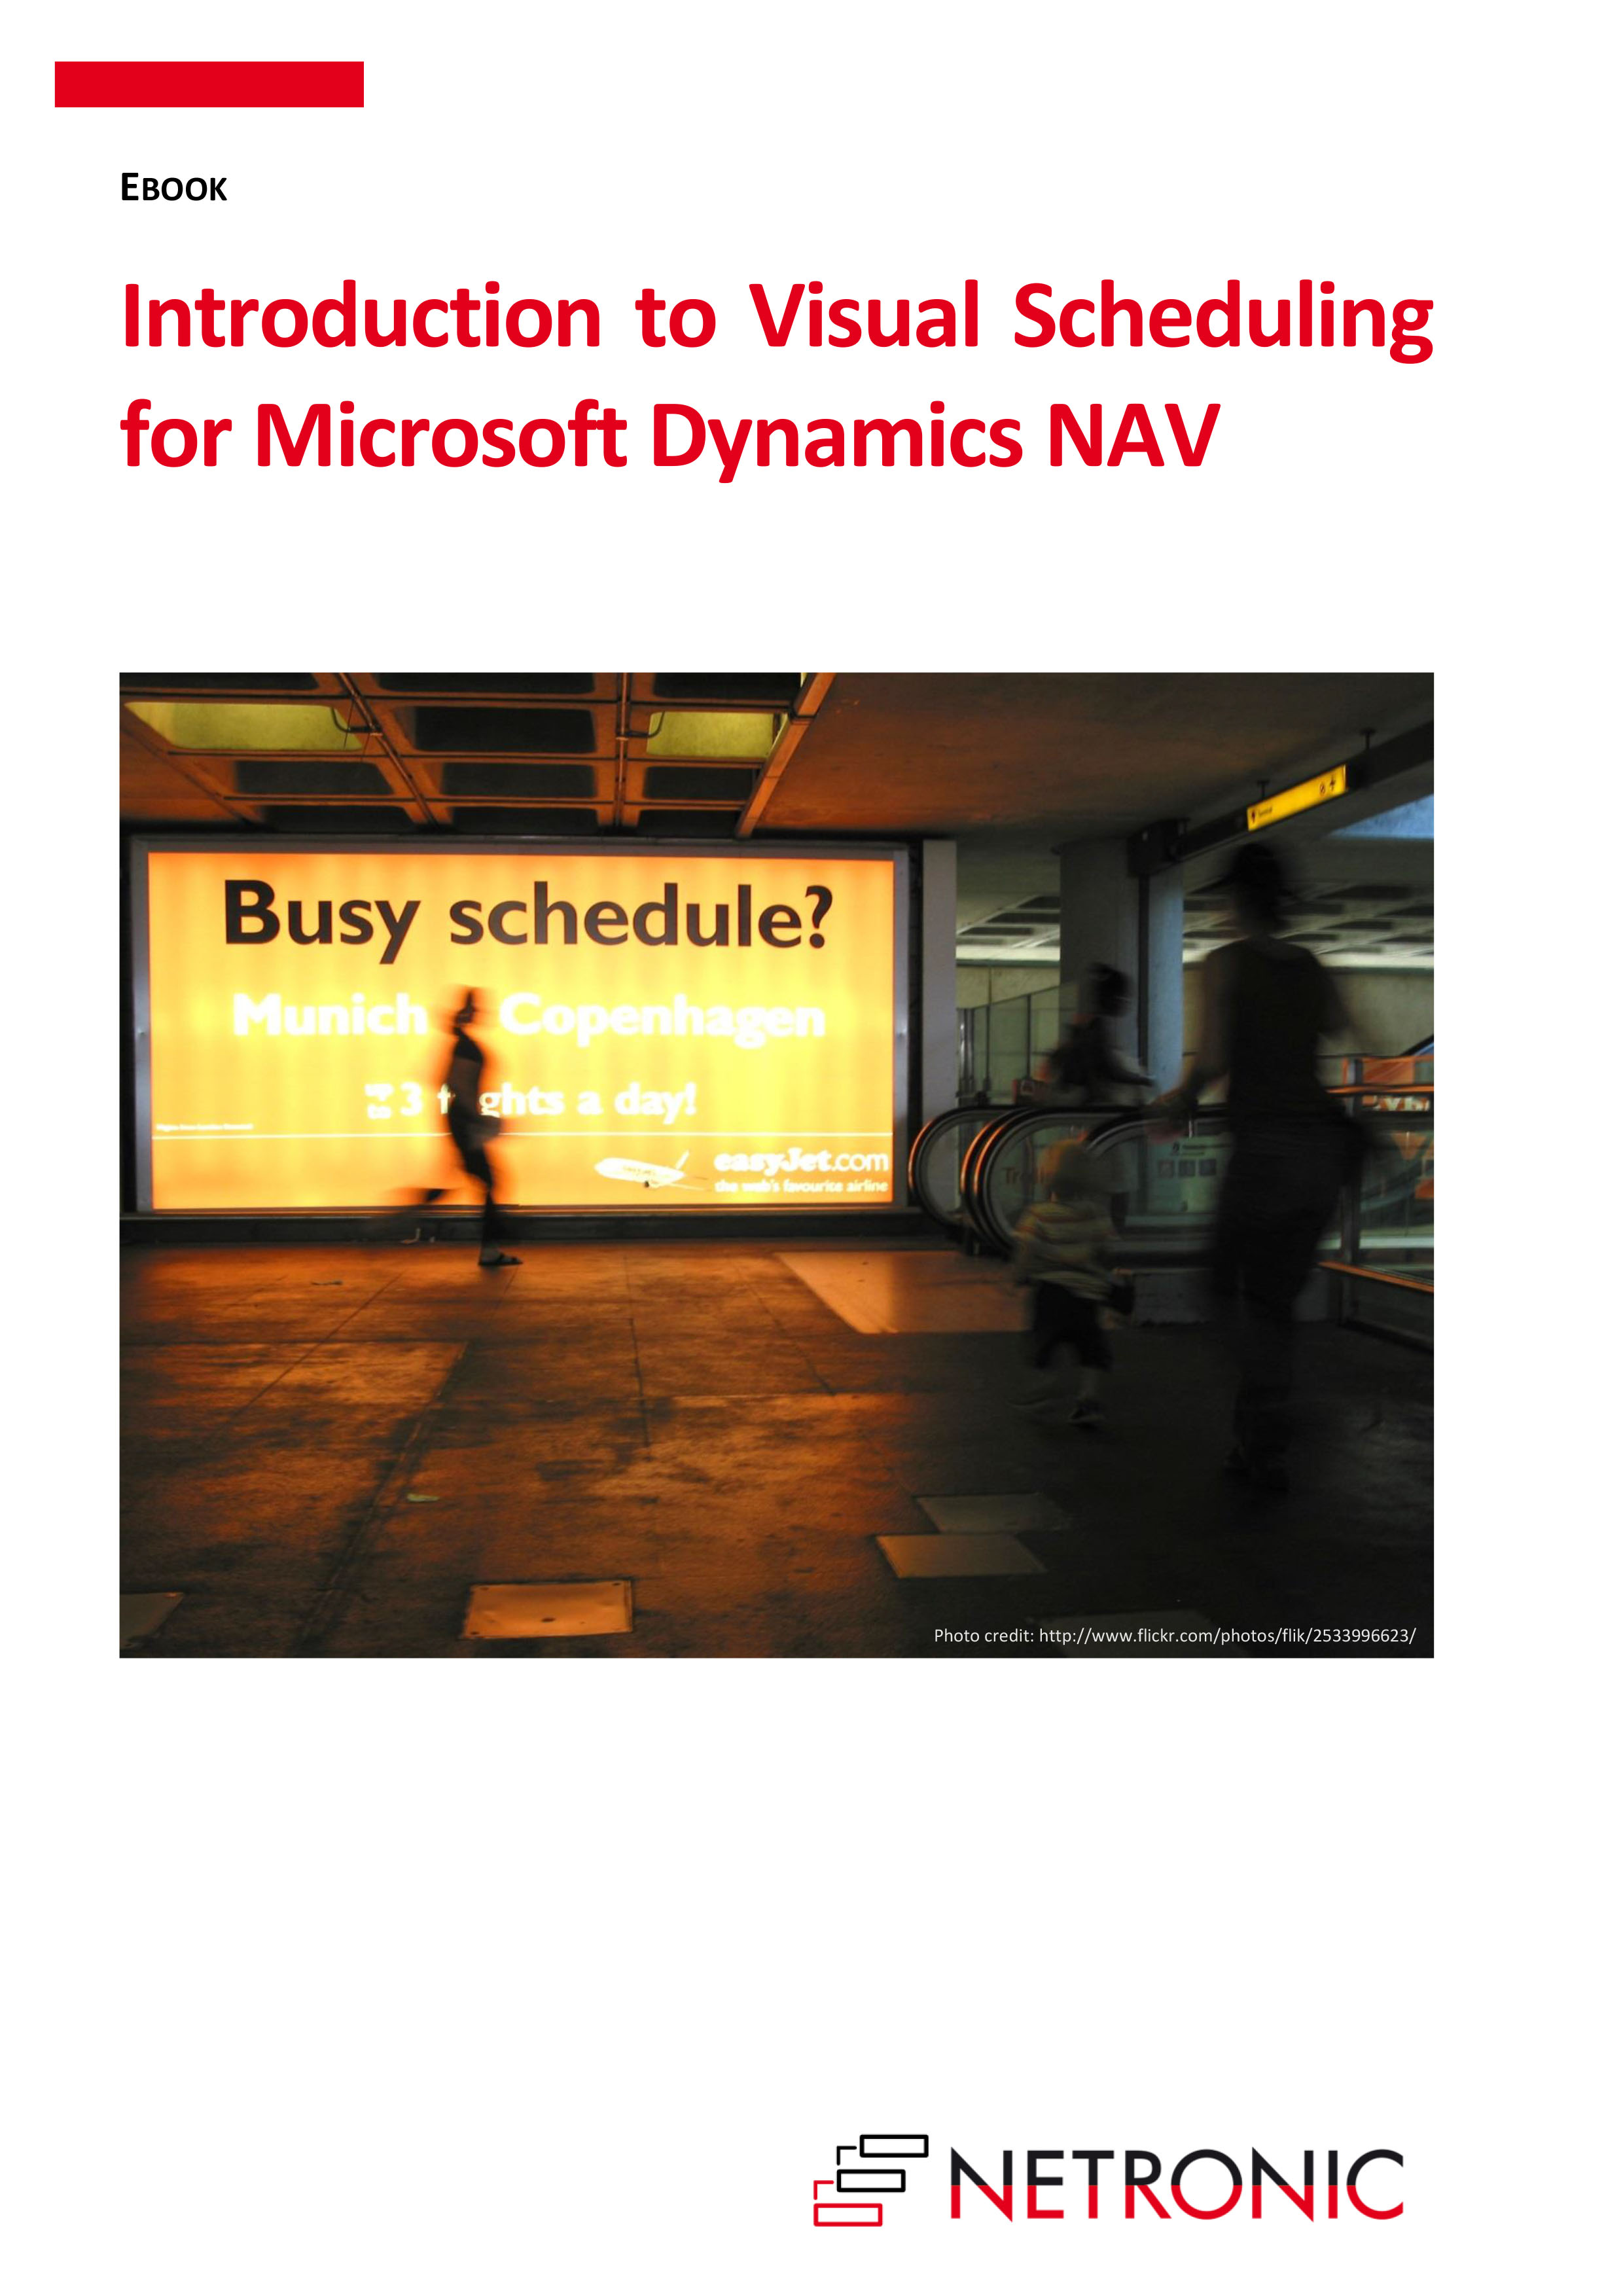 Introduction to Visual Scheduling for Dynamics NAV